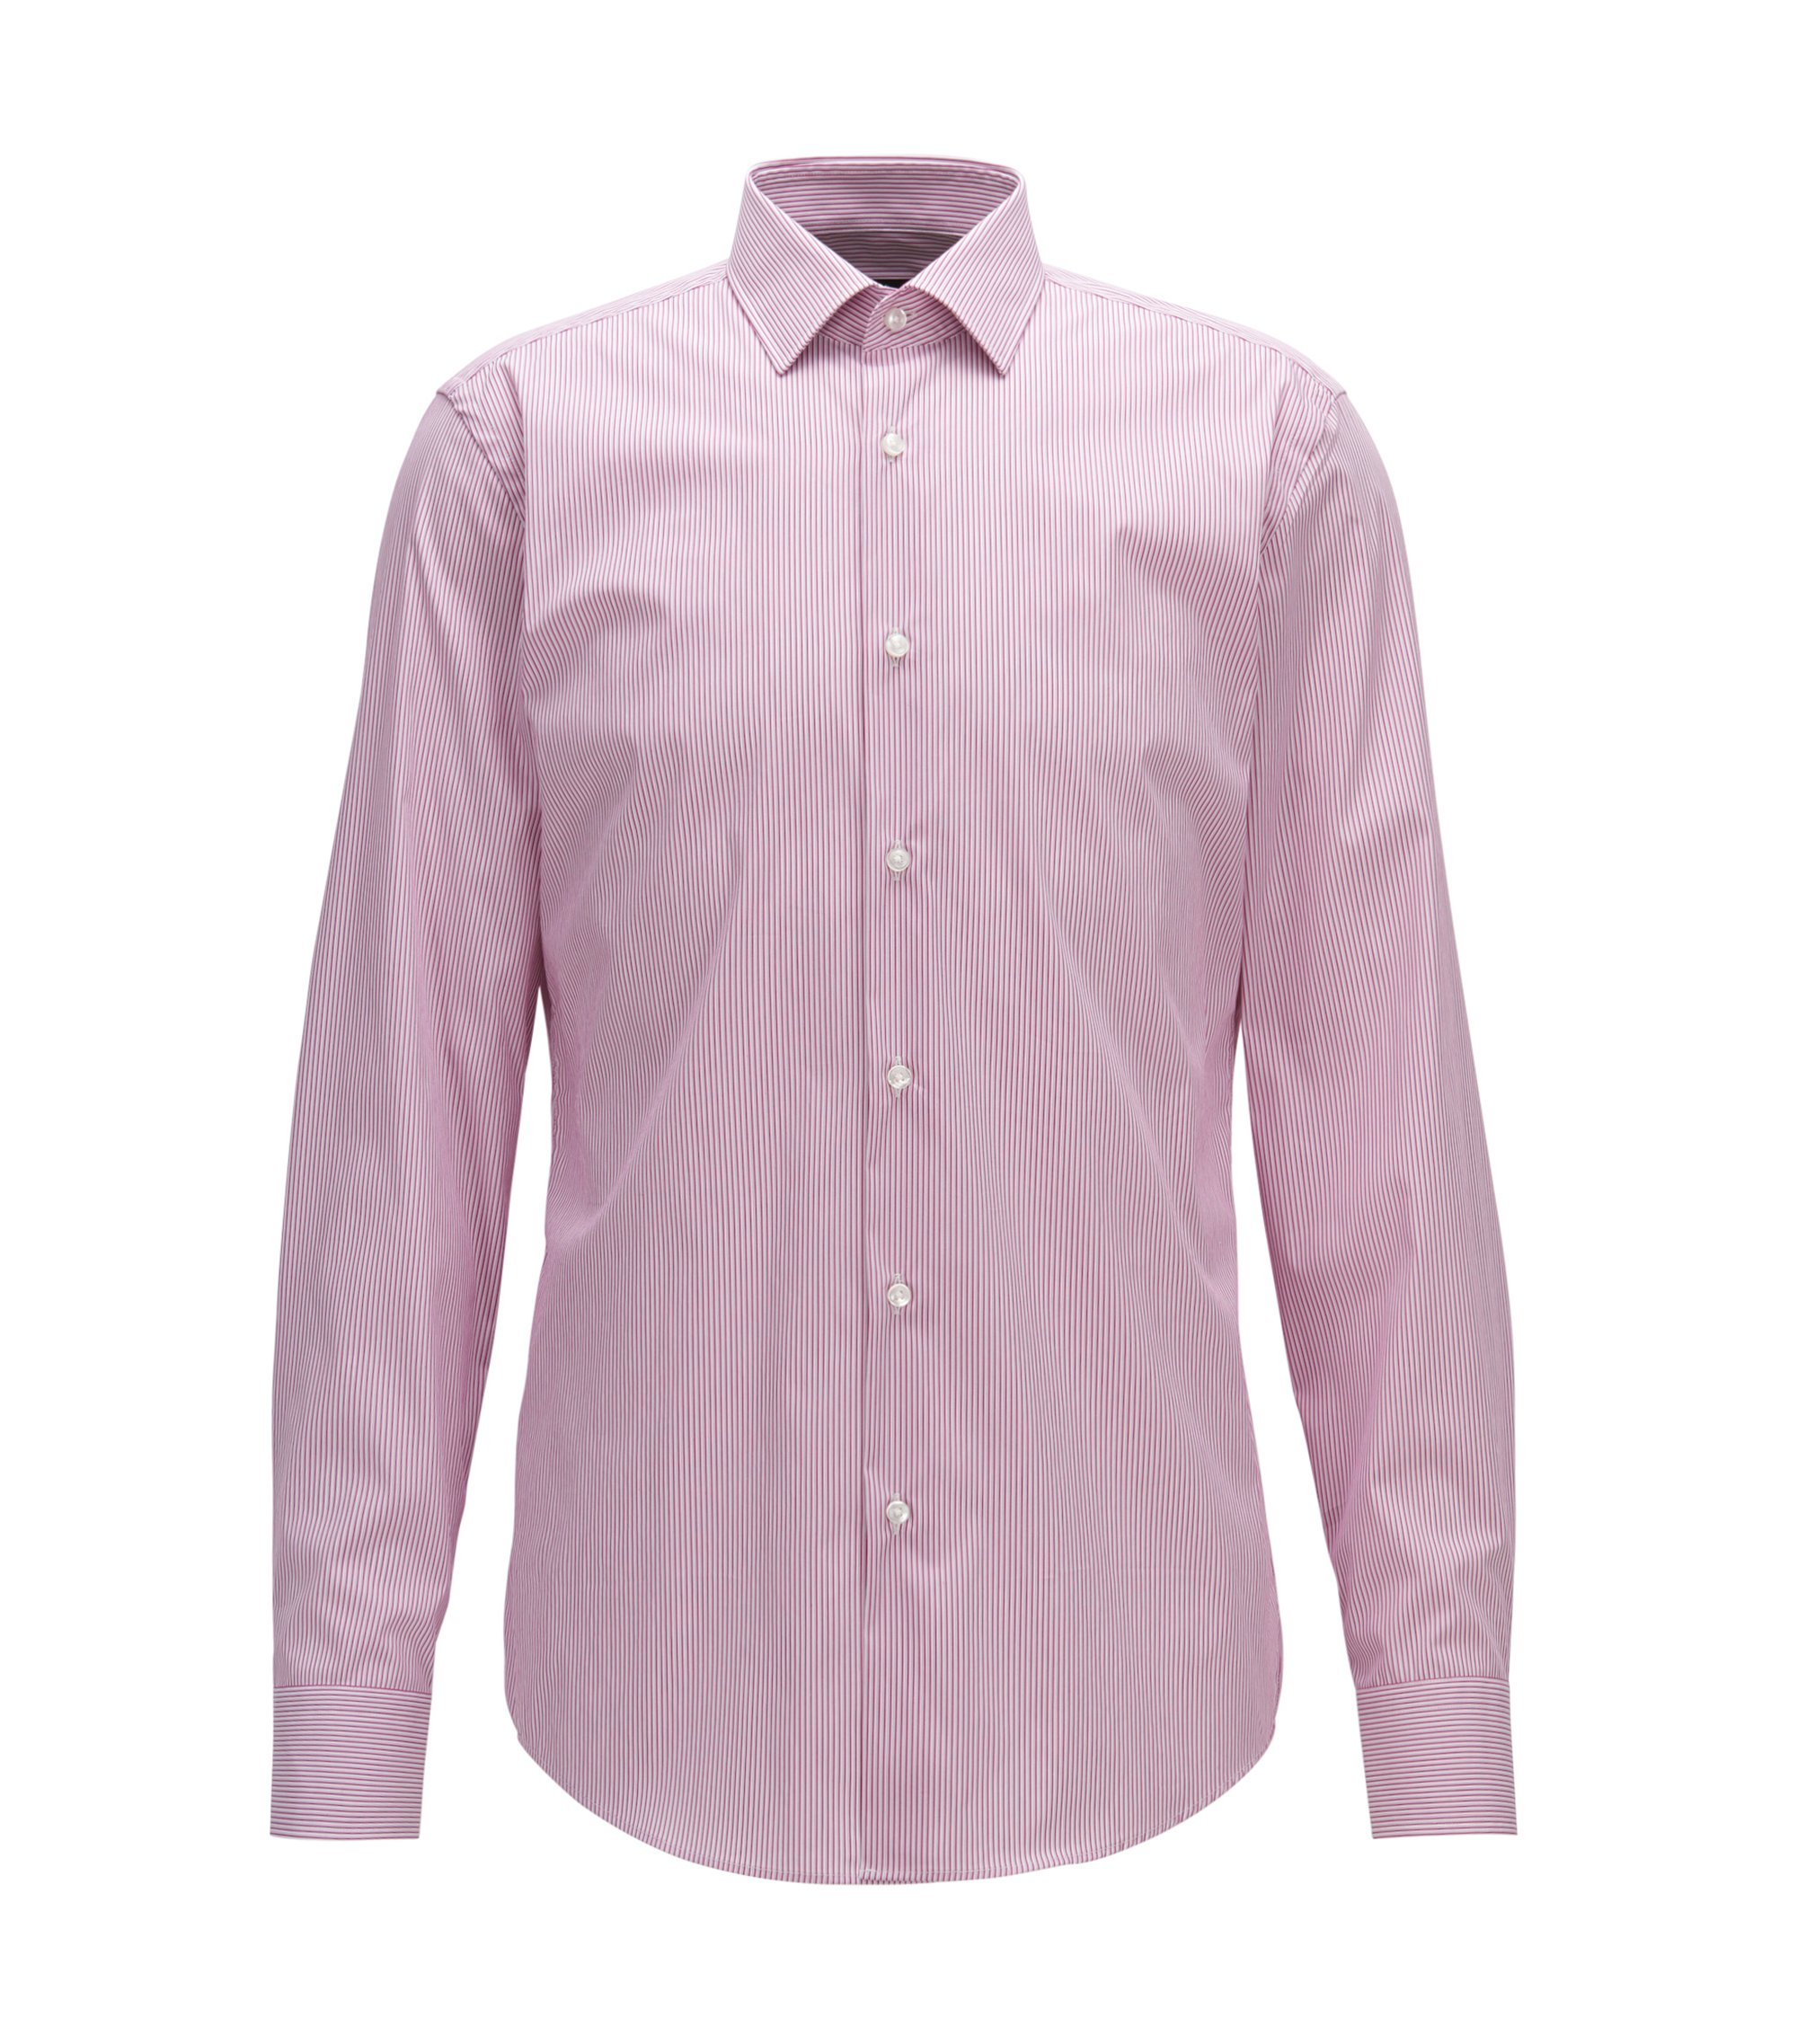 Pinstriped Stretch Cotton Dress Shirt, Slim Fit |  Jenno, Dark pink